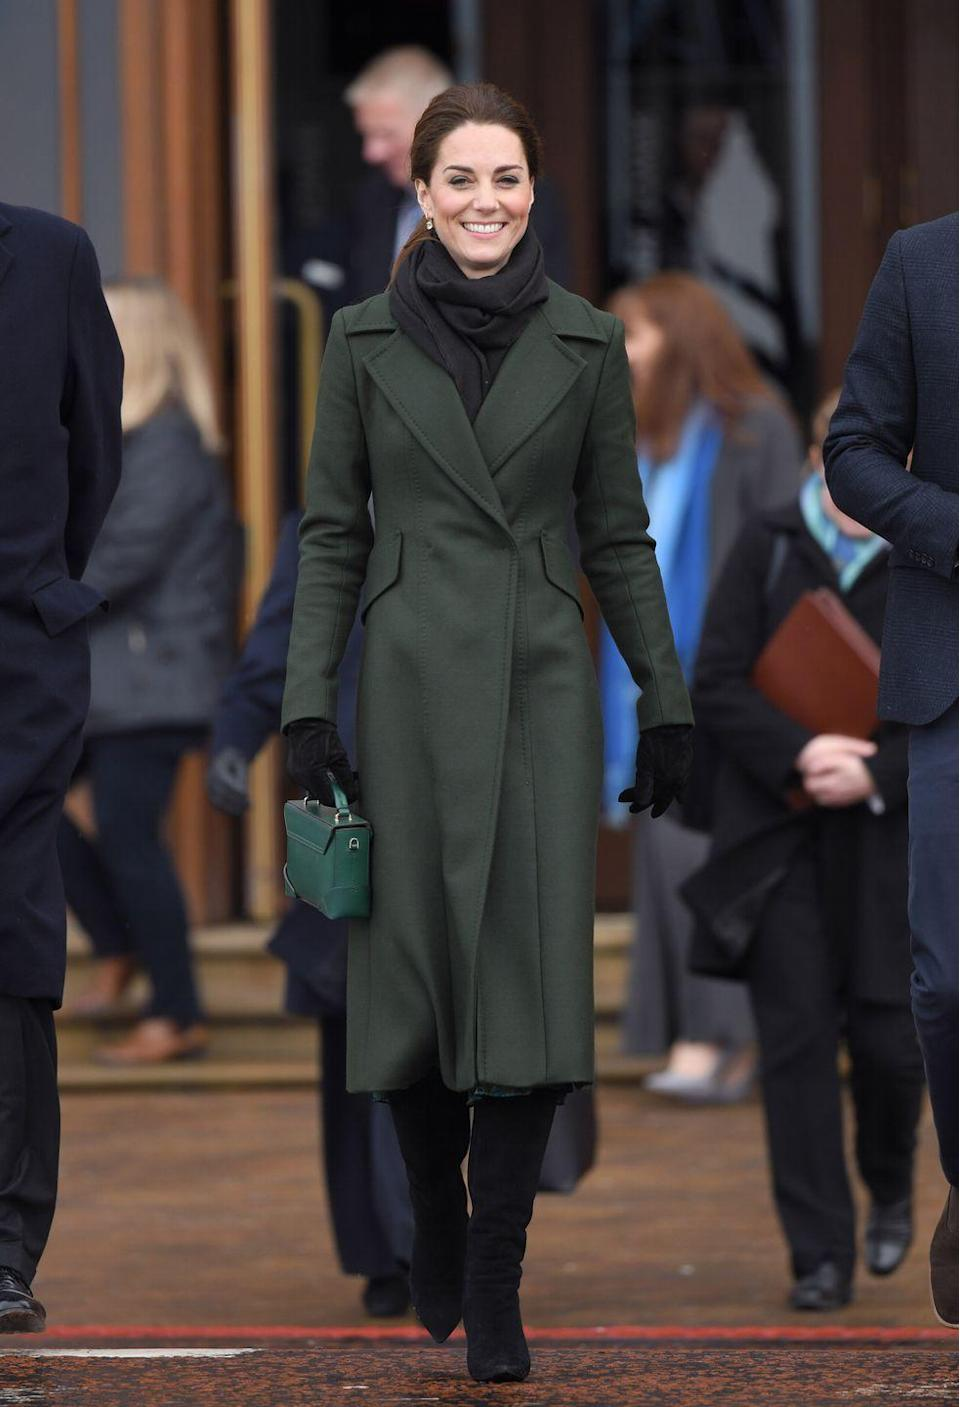 """<p>Kate Middleton sported a hunter green Sportmax coat, a black scarf and gloves, and high-heeled boots as she arrived in Blackpool. The duchess paired her look with her <a href=""""https://www.shopbop.com/micro-bold-top-handle-bag/vp/v=1/1587486474.htm?extid=affprg_linkshare_SB-TnL5HPStwNw&cvosrc=affiliate.linkshare.TnL5HPStwNw&clickid=WHN0smWRpTHrSkY1saxx4y-tUkl0rp0S3Tvoys0&subid1=TnL5HPStwNw-Uc0lzrx6nexiHhEPCdAUtg&sharedid=42352"""" rel=""""nofollow noopener"""" target=""""_blank"""" data-ylk=""""slk:Manu Atelier"""" class=""""link rapid-noclick-resp"""">Manu Atelier </a>suede top handle bag and small square drop earrings. </p><p><a class=""""link rapid-noclick-resp"""" href=""""https://go.redirectingat.com?id=74968X1596630&url=https%3A%2F%2Fwww.shopbop.com%2Fmicro-bold-top-handle-bag%2Fvp%2Fv%3D1%2F1587486474.htm%3Fextid%3Daffprg_linkshare_SB-TnL5HPStwNw%26cvosrc%3Daffiliate.linkshare.TnL5HPStwNw%26clickid%3DWHN0smWRpTHrSkY1saxx4y-tUkl0rp0S3Tvoys0%26subid1%3DTnL5HPStwNw-Uc0lzrx6nexiHhEPCdAUtg%26sharedid%3D42352&sref=https%3A%2F%2Fwww.redbookmag.com%2Flife%2Fg34824194%2Fkate-middleton-fashion%2F"""" rel=""""nofollow noopener"""" target=""""_blank"""" data-ylk=""""slk:Shop Similar""""><strong>Shop Similar</strong> </a> <em>Micro Bold Top Handle Bag, Manu Atelier, $545</em></p><p><strong><a class=""""link rapid-noclick-resp"""" href=""""https://go.redirectingat.com?id=74968X1596630&url=https%3A%2F%2Fwww.bloomingdales.com%2Fshop%2Fproduct%2Fkate-spade-new-york-square-leverback-earrings%3FID%3D1291641%26pla_country%3DUS%26cm_mmc%3DGoogle-PLA-ADC-_-Jewelry%2B%2526%2BAccessories-NA-_-Kate%2BSpade%2BNew%2BYork-_-98686397132USA%26CAWELAID%3D120156070001429841%26CAGPSPN%3Dpla%26CAAGID%3D47685645839%26CATCI%3Daud-298639203740%253Apla-384024108716%26CATARGETID%3D120156070006125192%26cadevice%3Dc%26gclid%3DCjwKCAiAwojkBRBbEiwAeRcJZMDr_eANnZbNvphConrPCBoiEGp46IPI6lrdcMSRHJvHsRI4Jxj9MBoCvUsQAvD_BwE&sref=https%3A%2F%2Fwww.redbookmag.com%2Flife%2Fg34824194%2Fkate-middleton-fashion%2F"""" rel=""""nofollow noopener"""" target=""""_blank"""" data-ylk=""""slk:Shop Sim"""